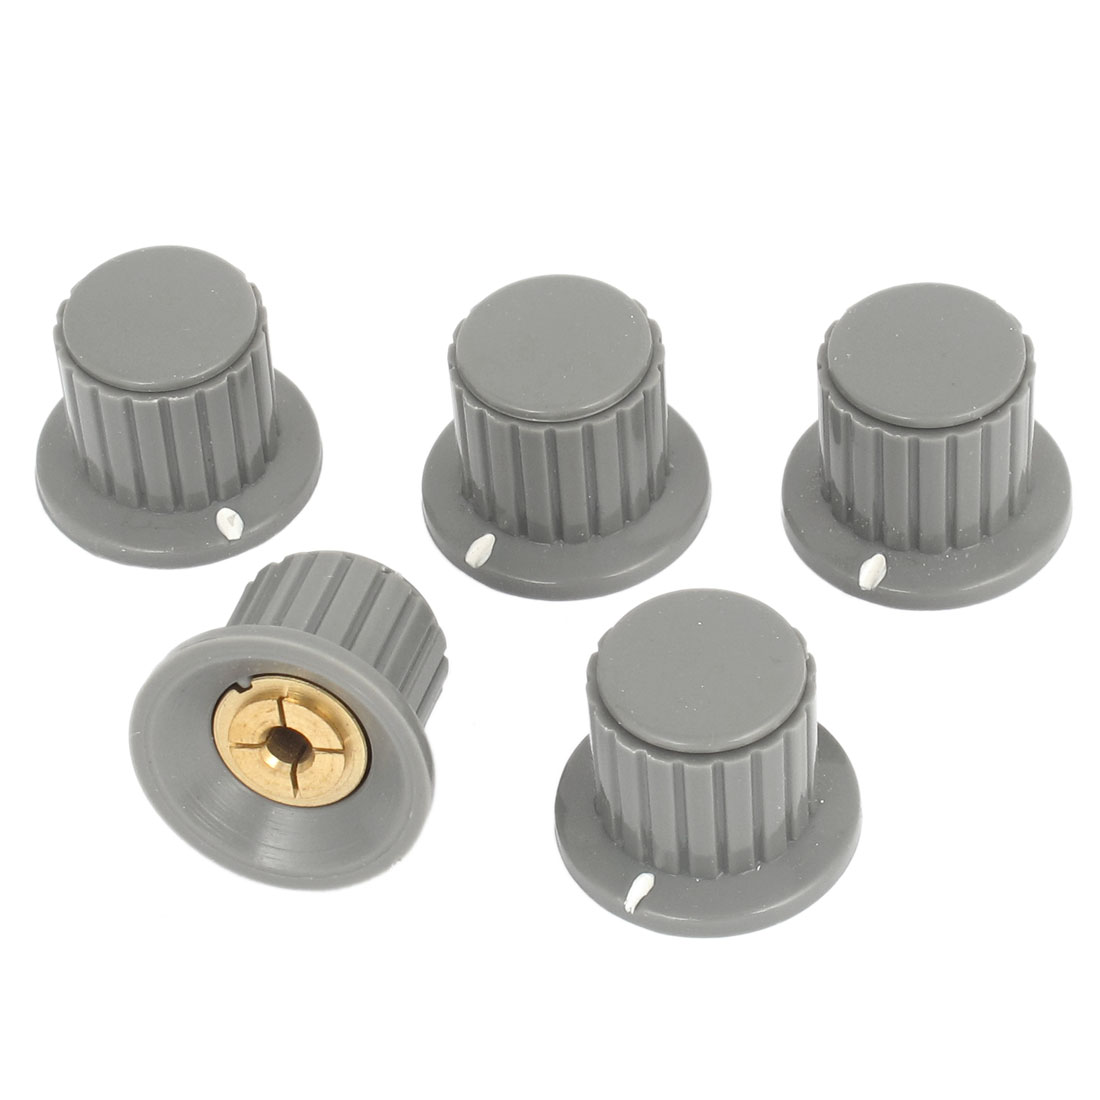 5 Pcs 4mm Shaft Insert Dia Brass Tone Core Potentiometer Control Knobs Gray